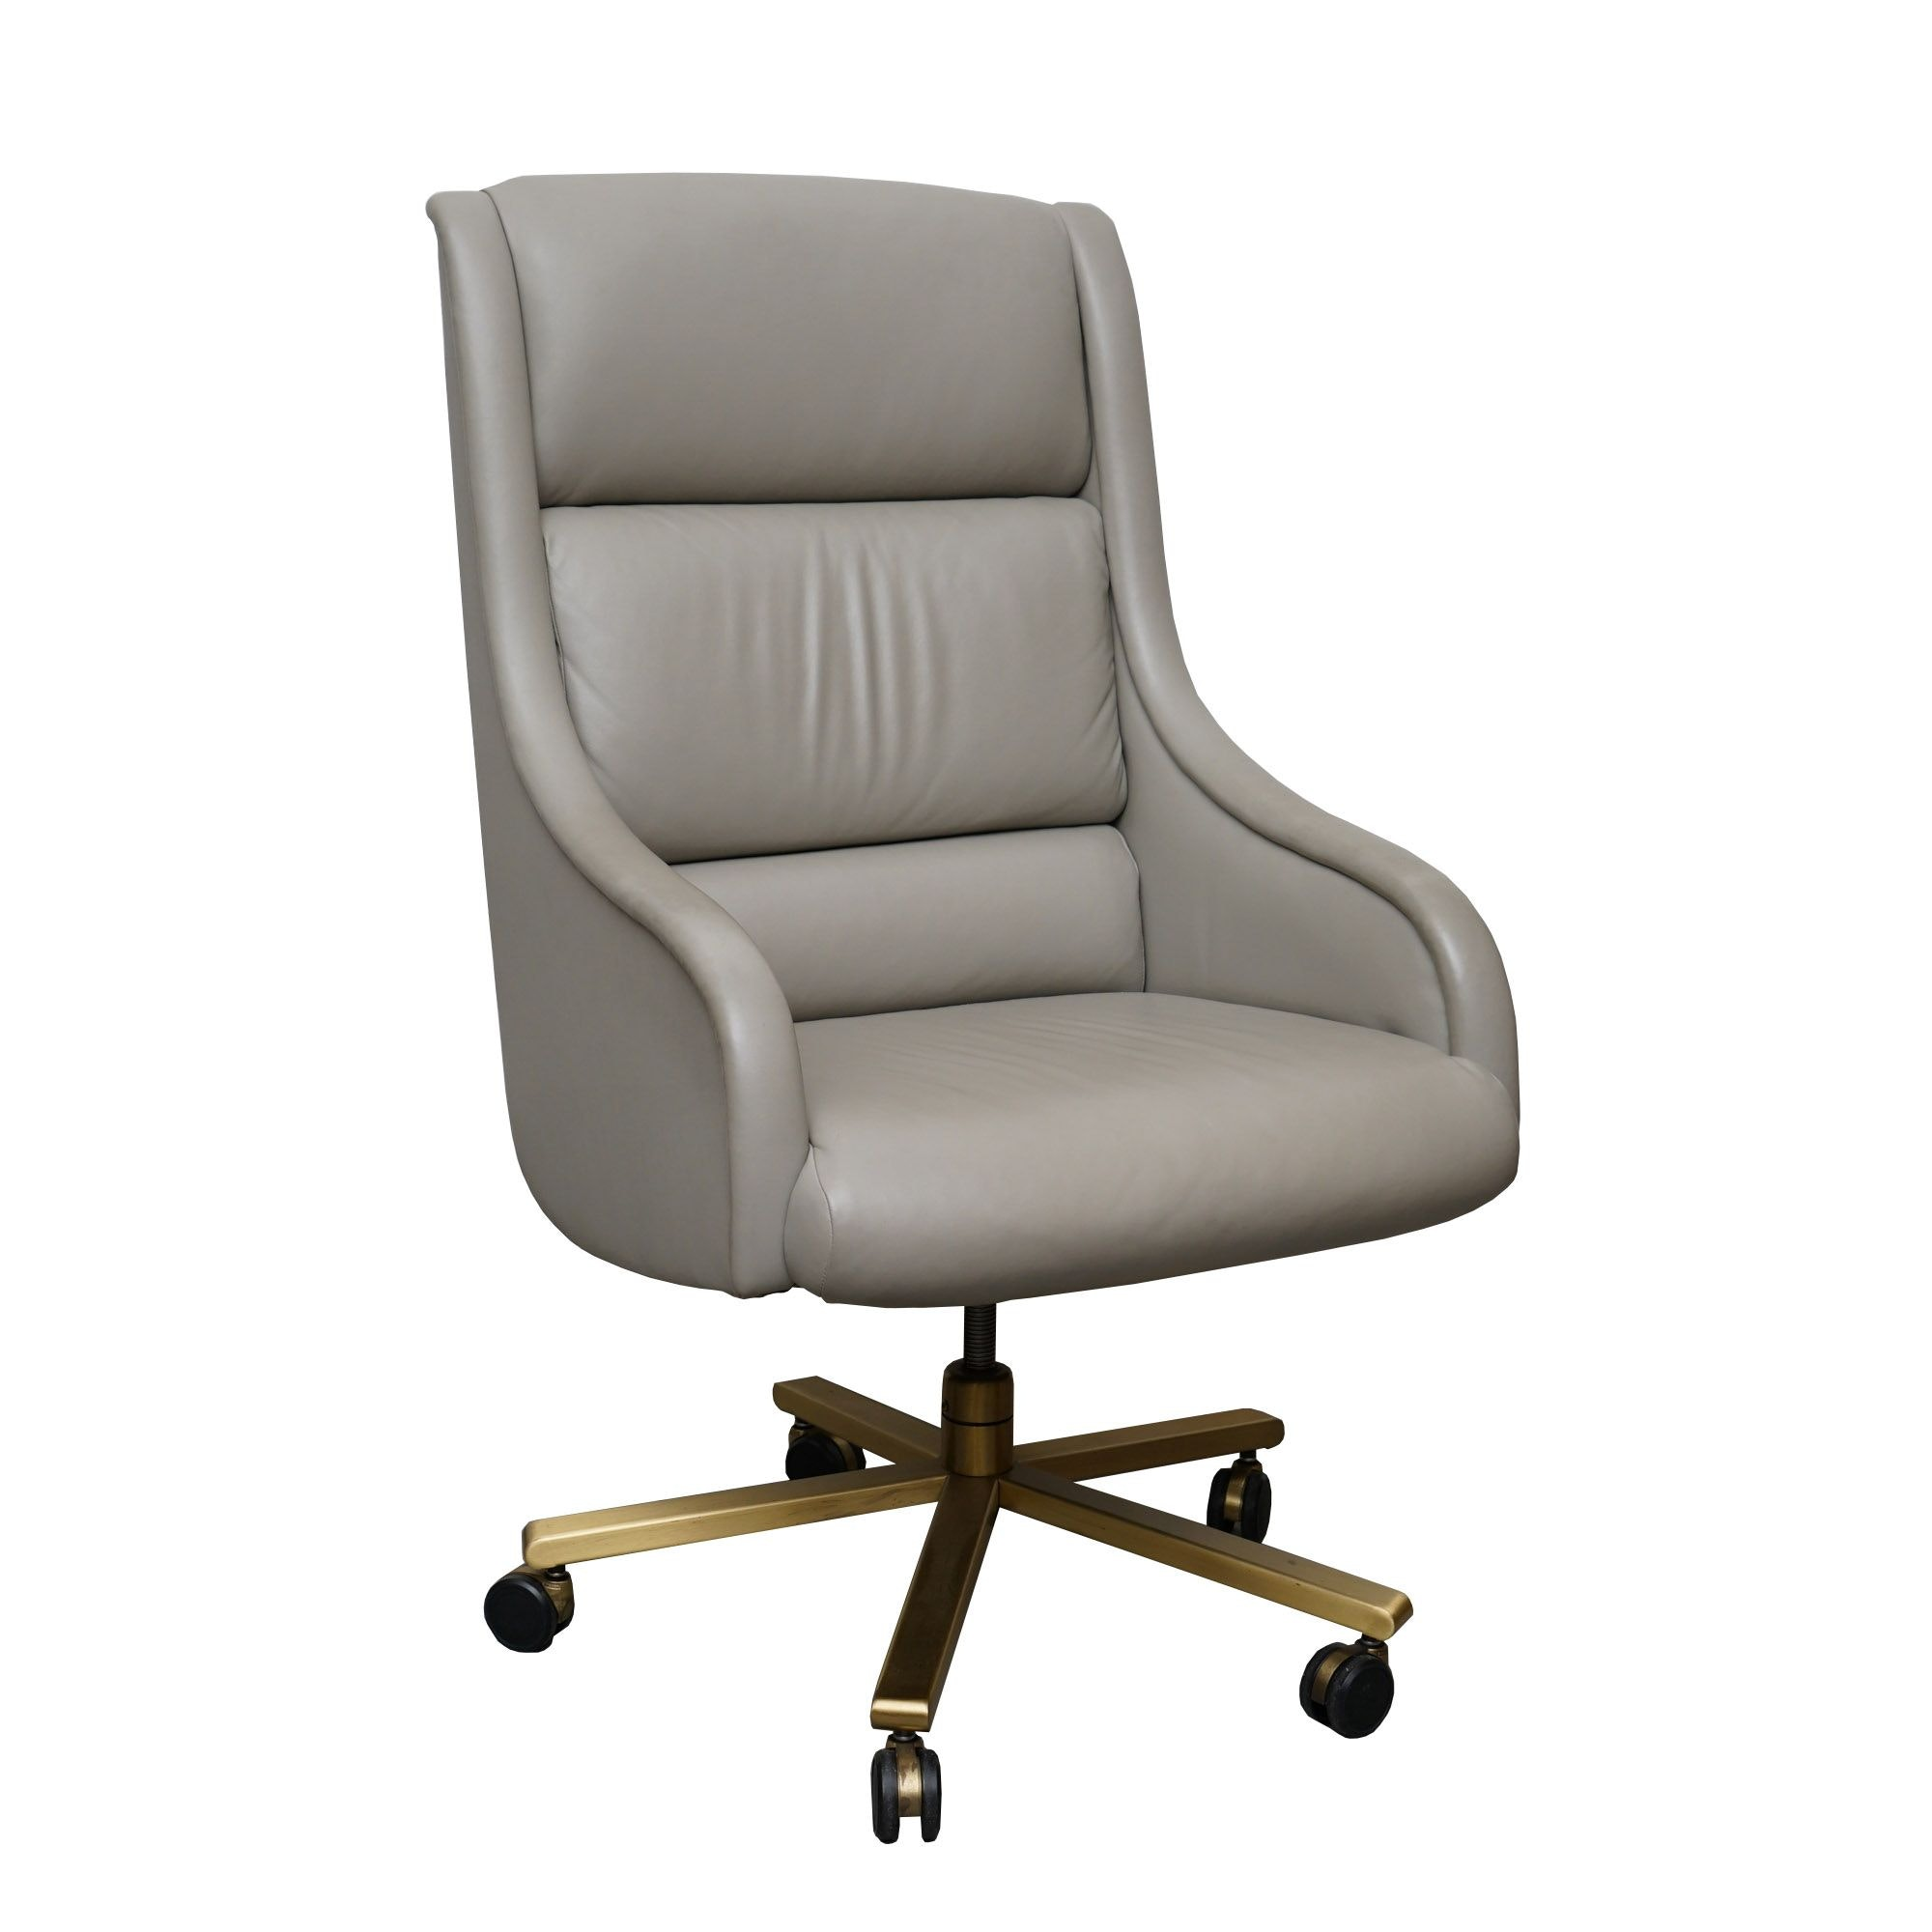 Grey Leather Rolling Swivel Chair by Baker